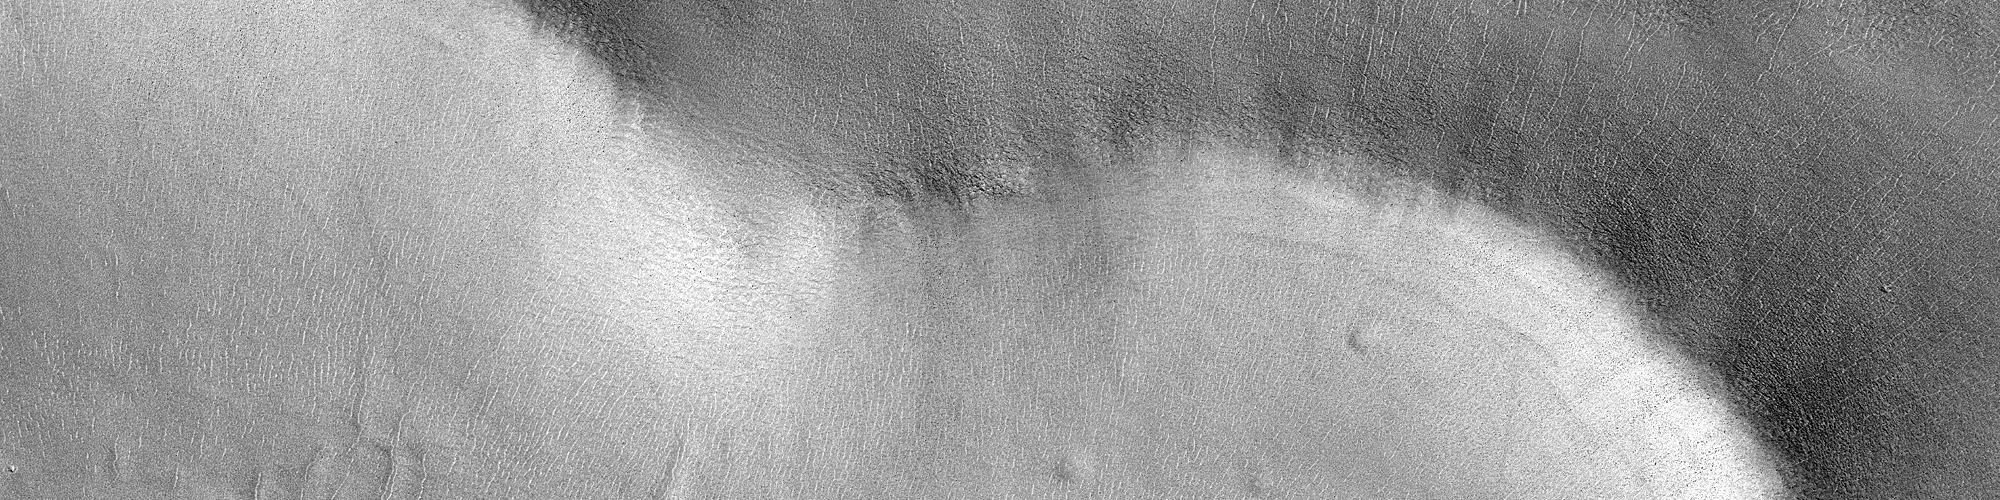 Figure 8 Craters on Mars